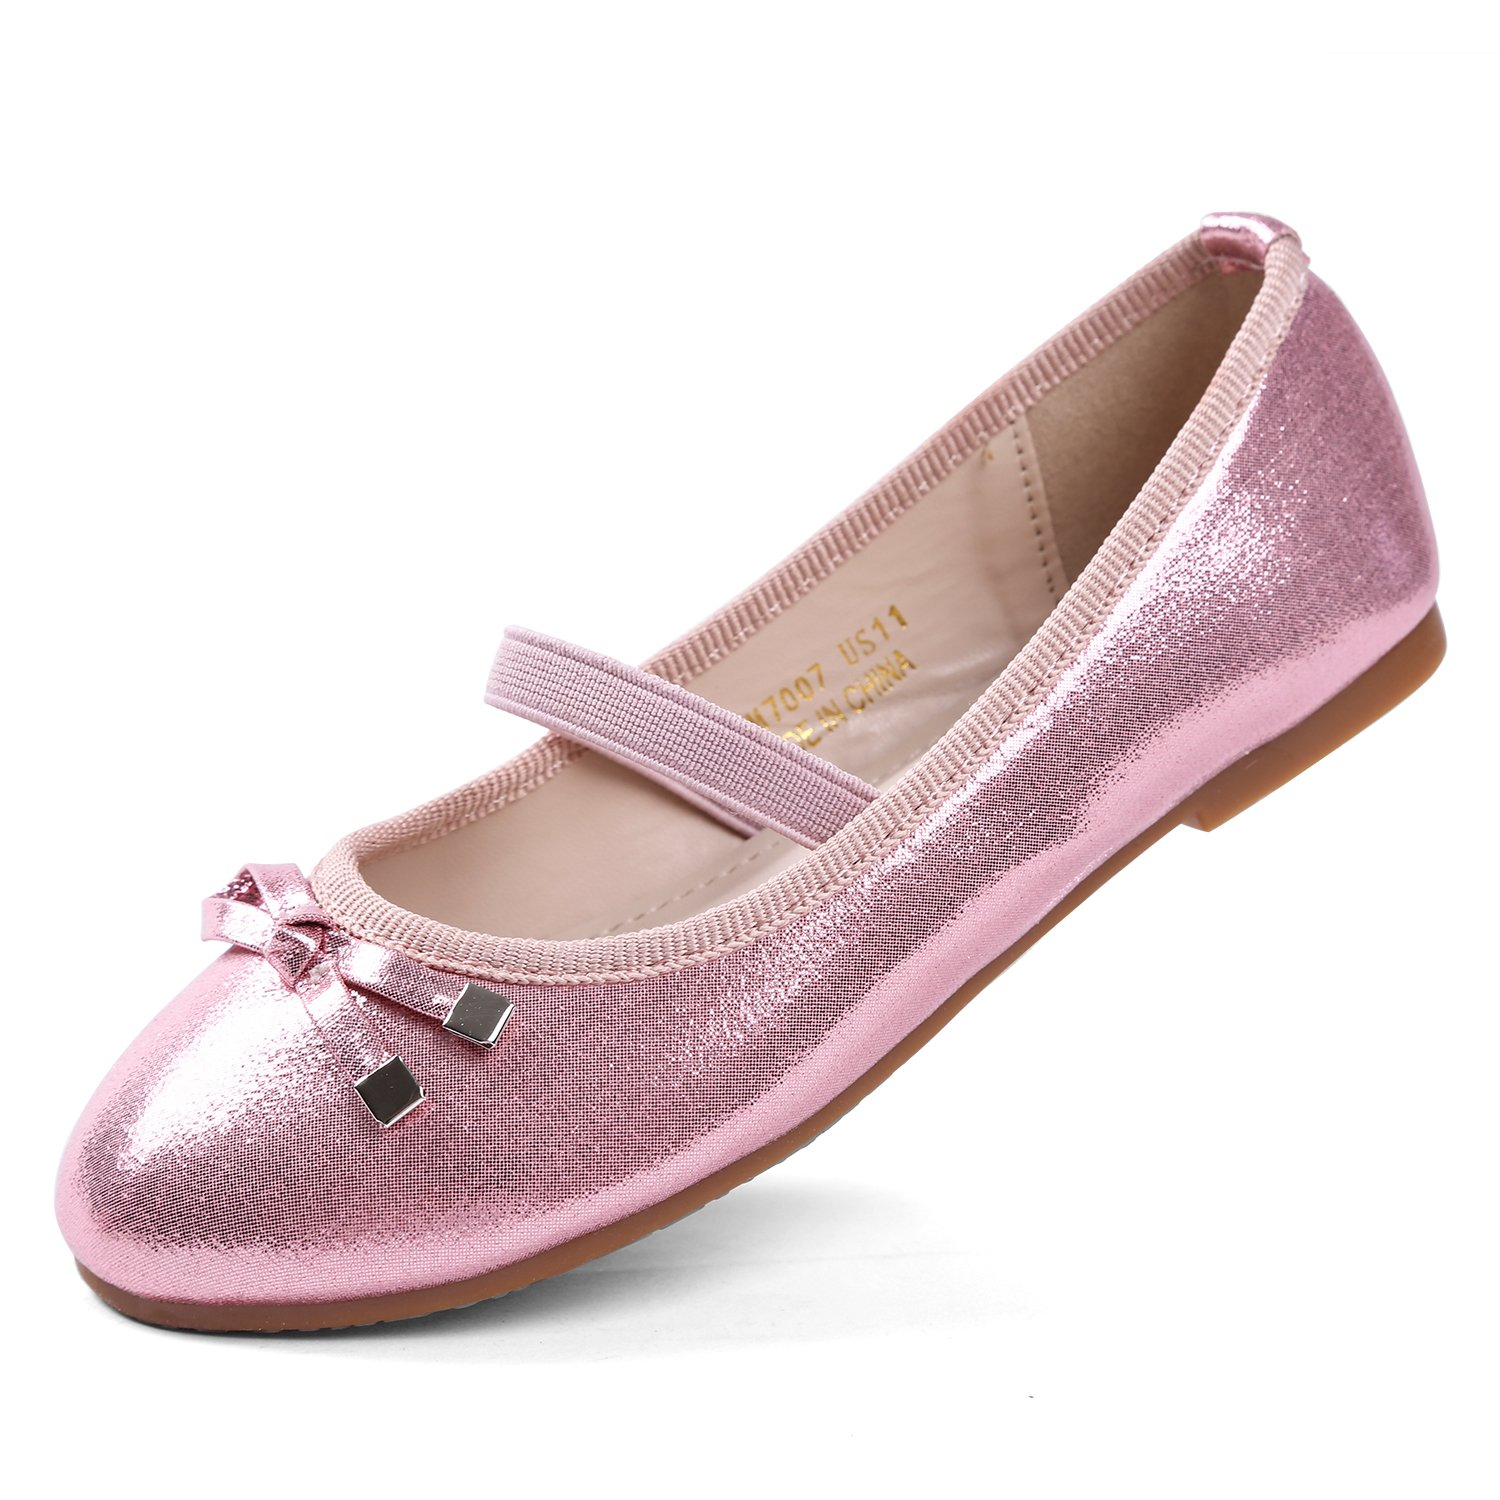 74d010af7c721 EIGHT KM EKM701 Toddler & Ballet Flats Mary Janes Dress Shoes ...